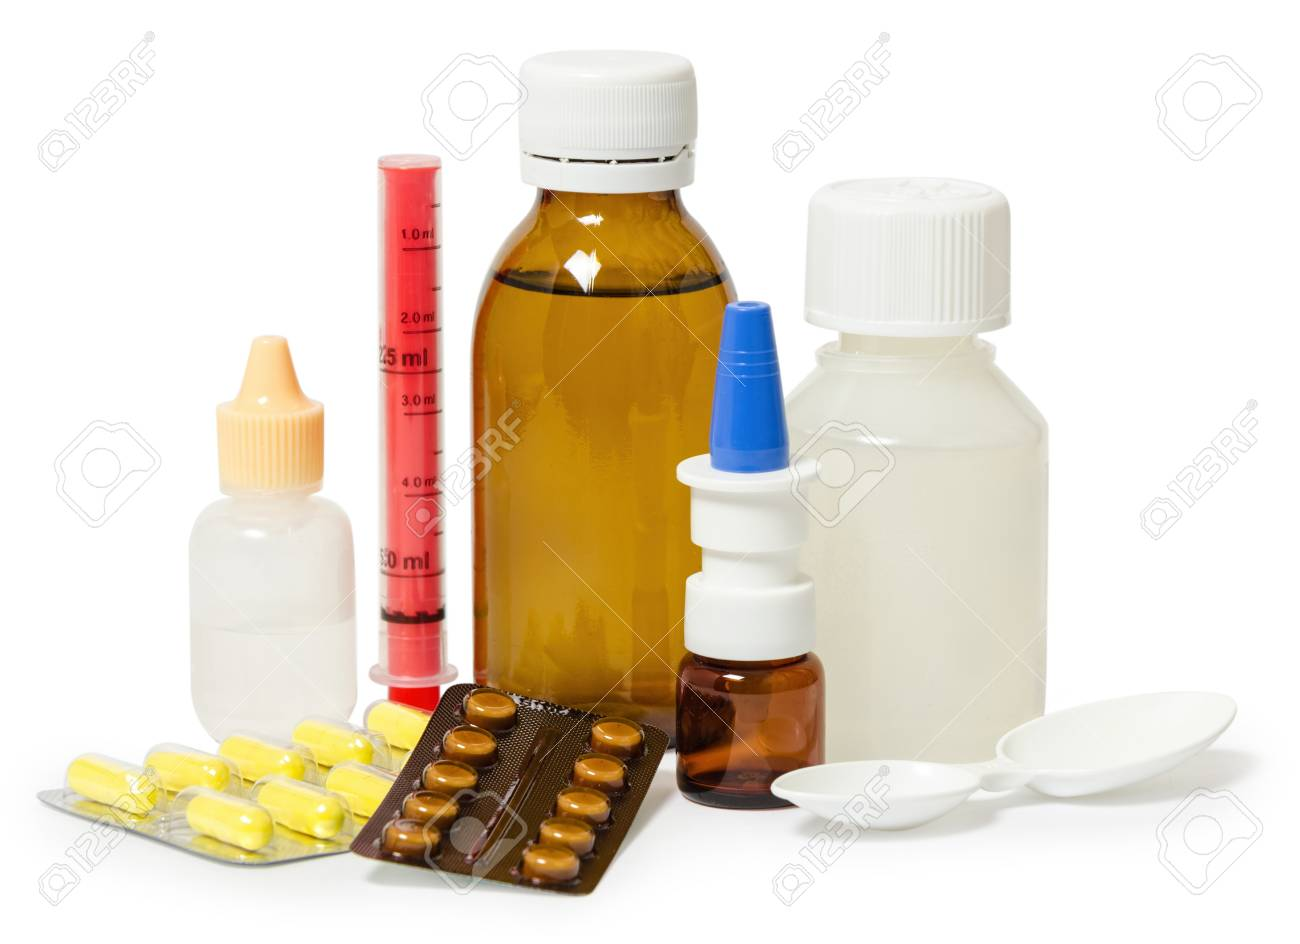 set of medicines for the treatment of various ailments and symptoms. Isolated on white background - 69755801